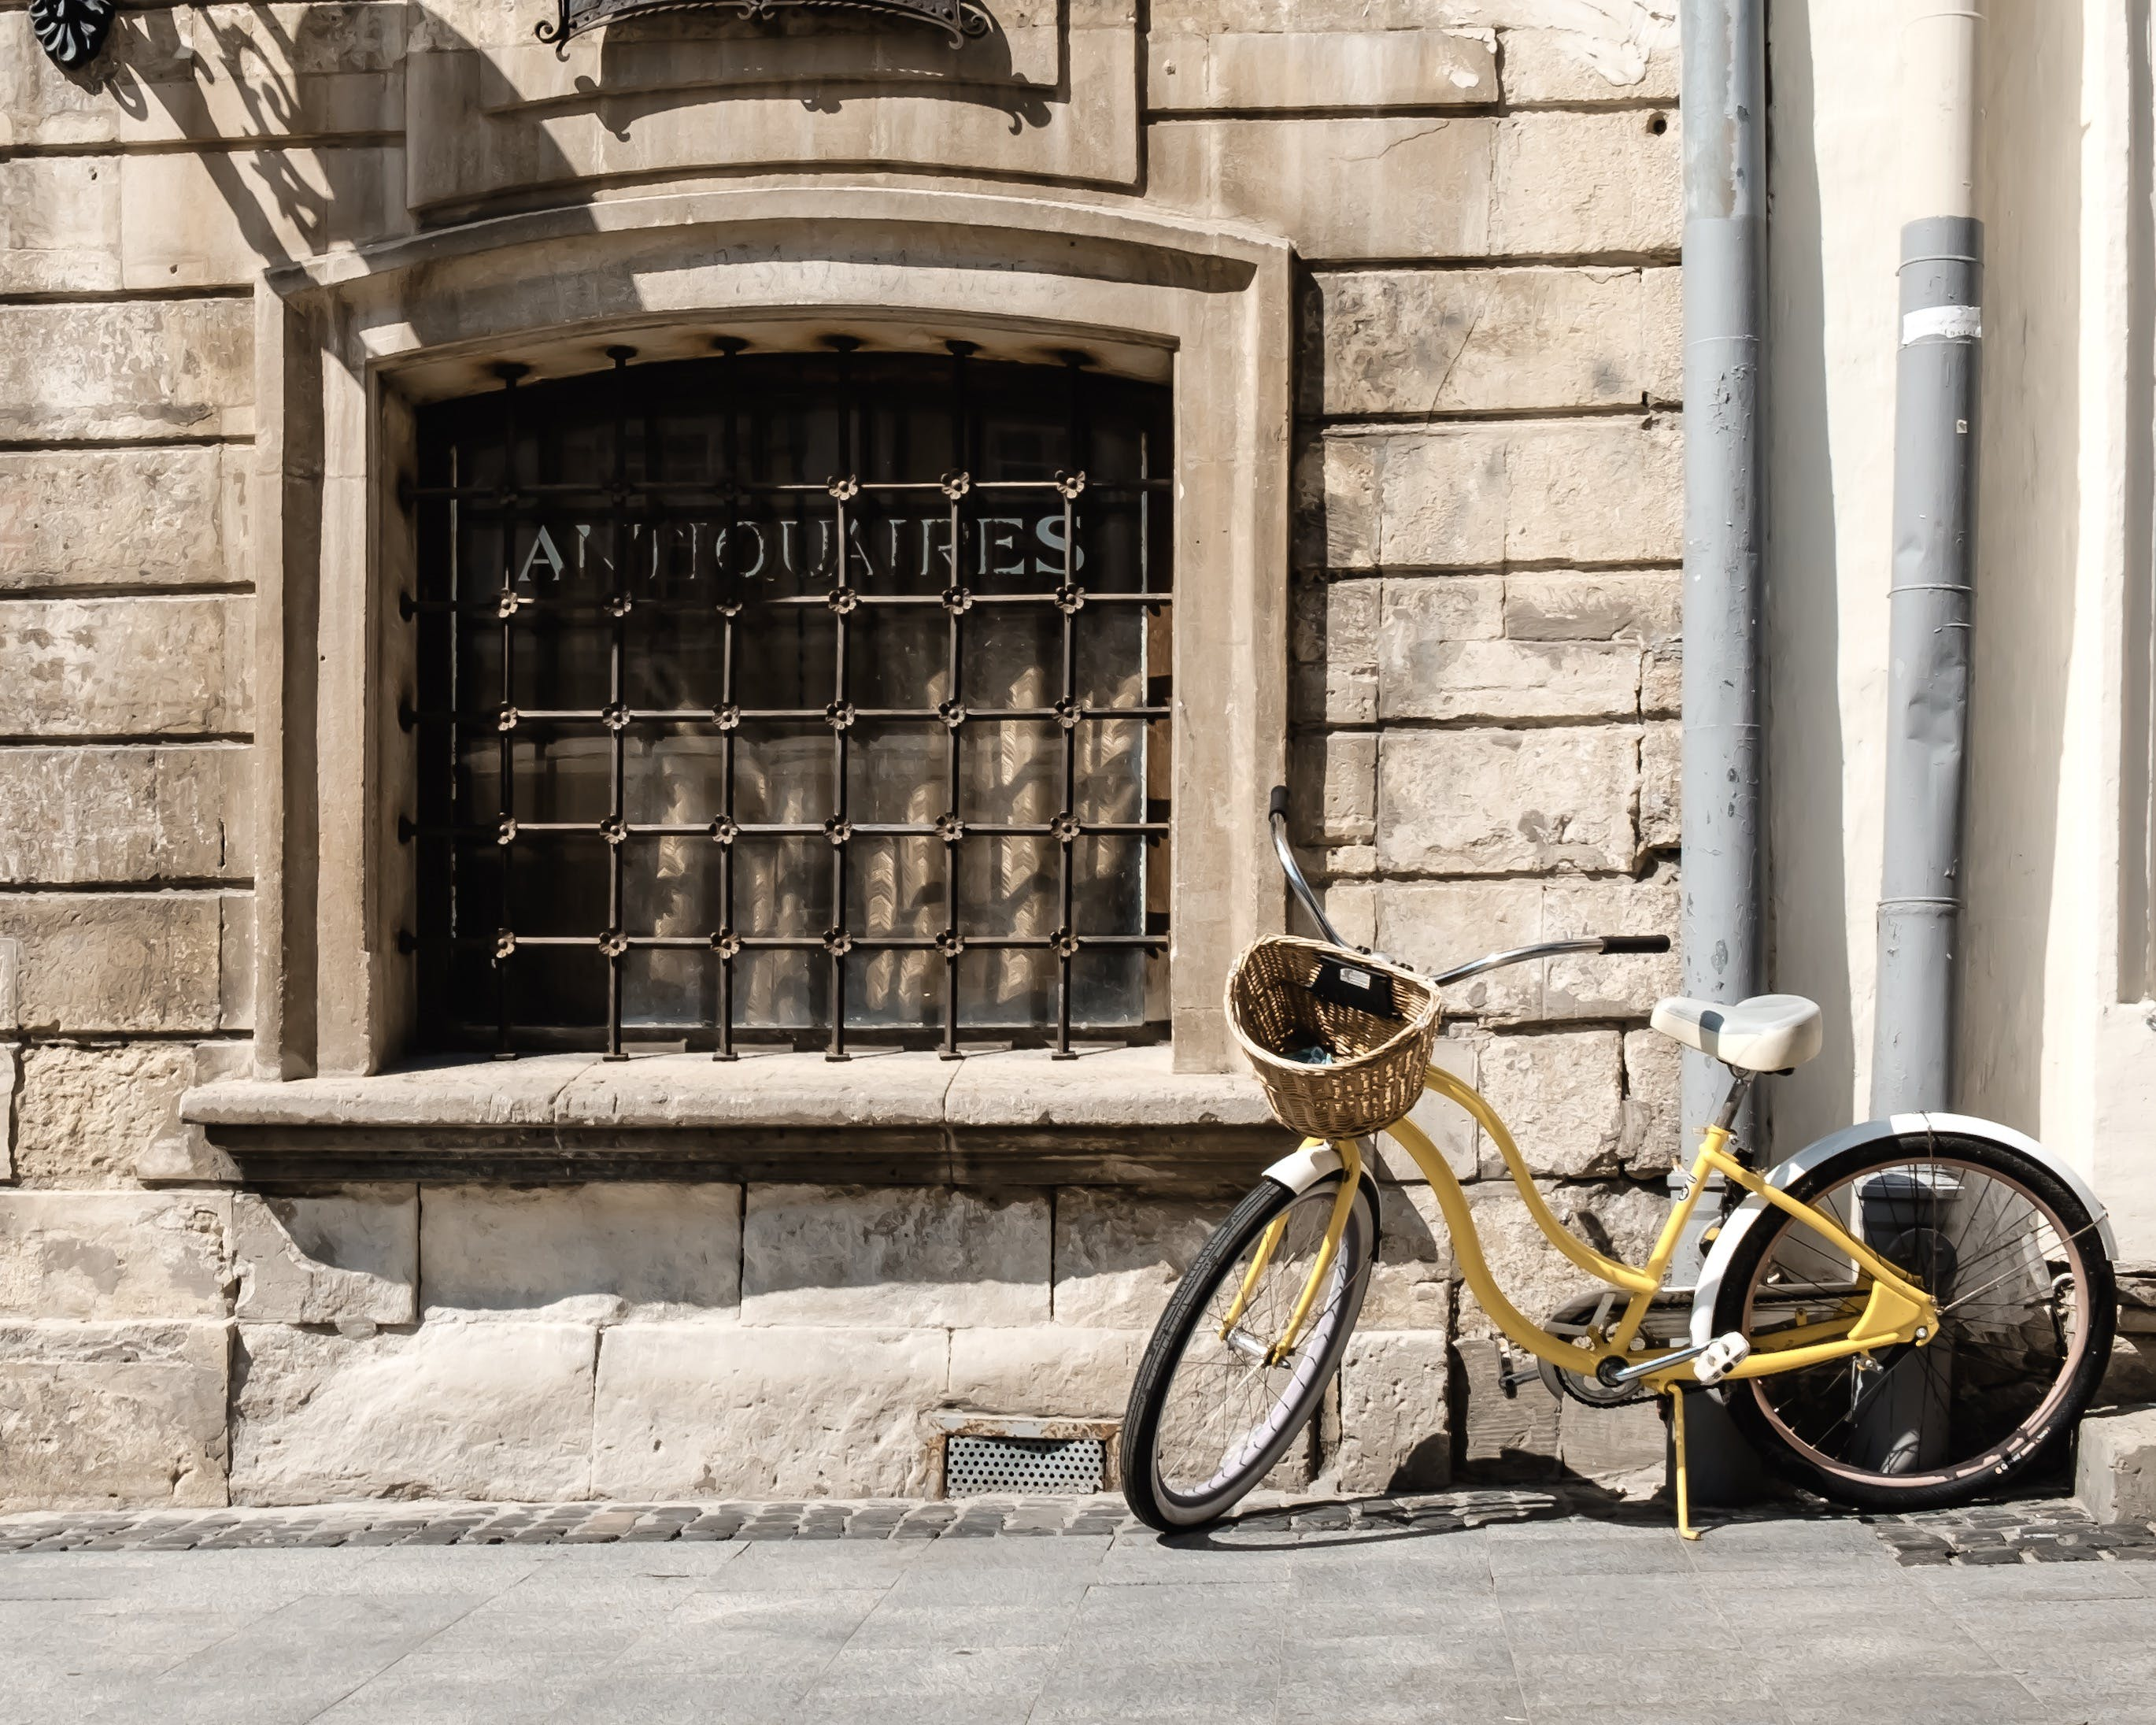 Free stock photo of architectural, Lviv, old town, street